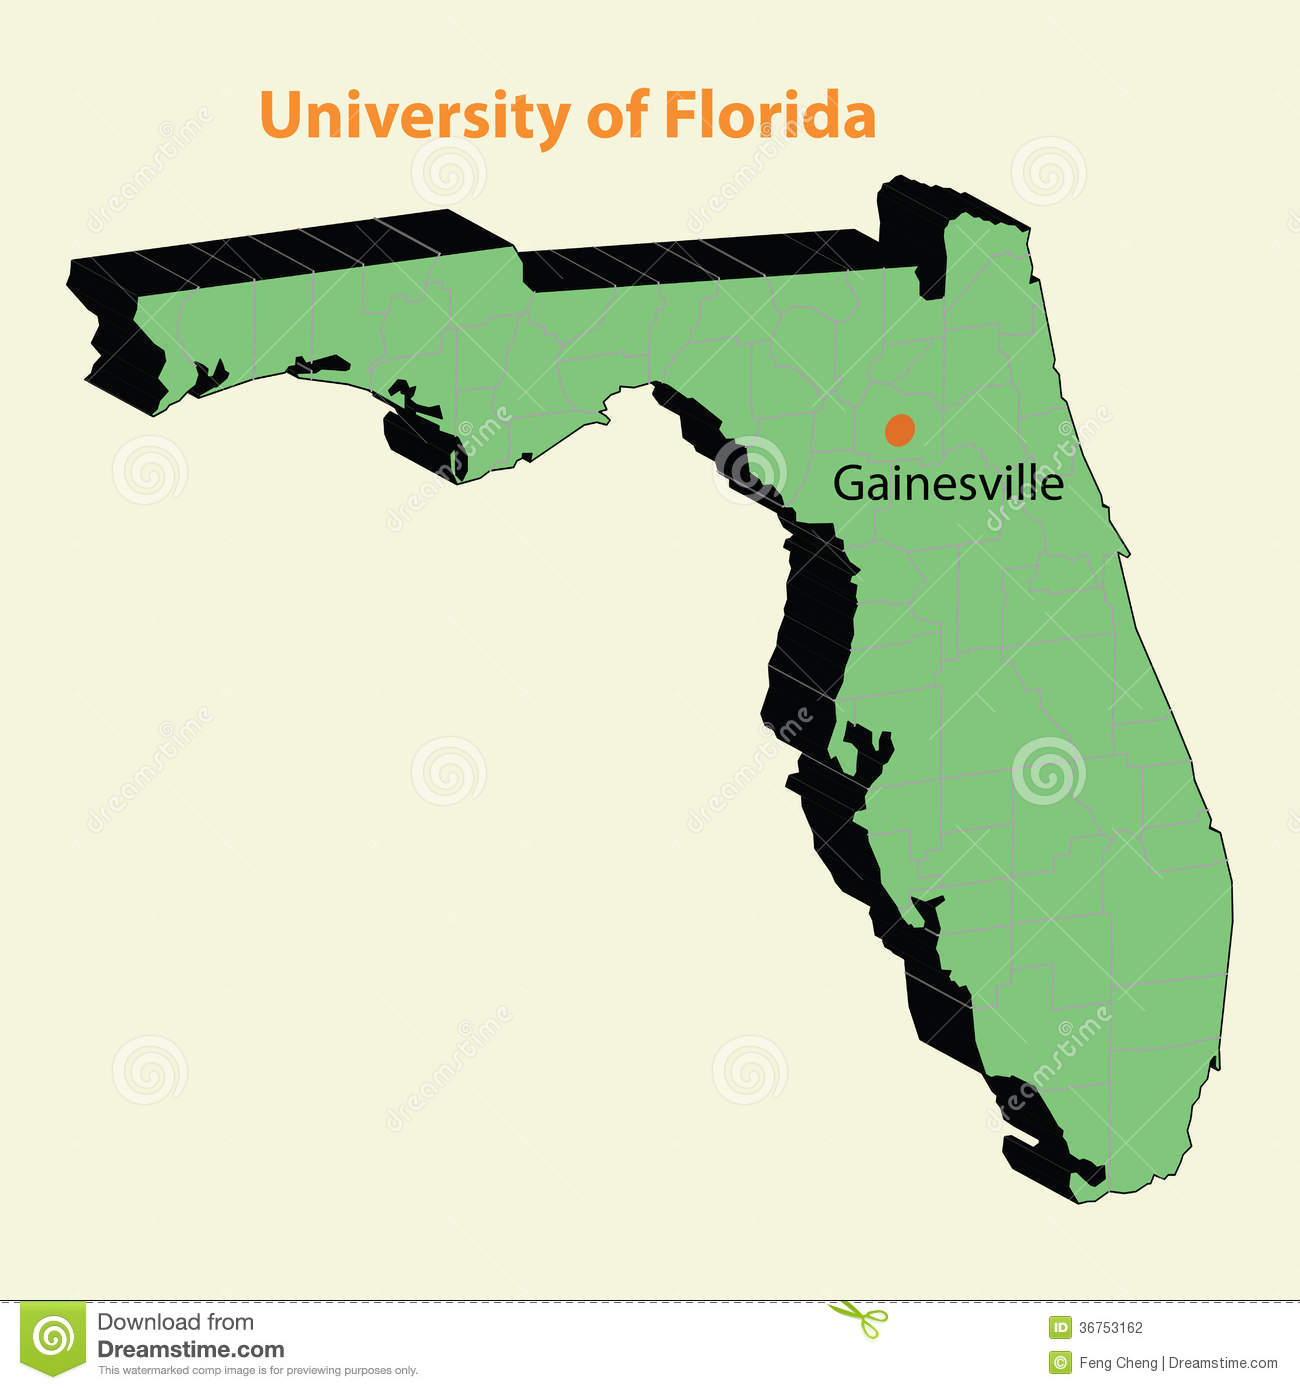 University Of Florida Location Map.3d Map University Of Florida Uf Ufl Gainesville Stock Vector